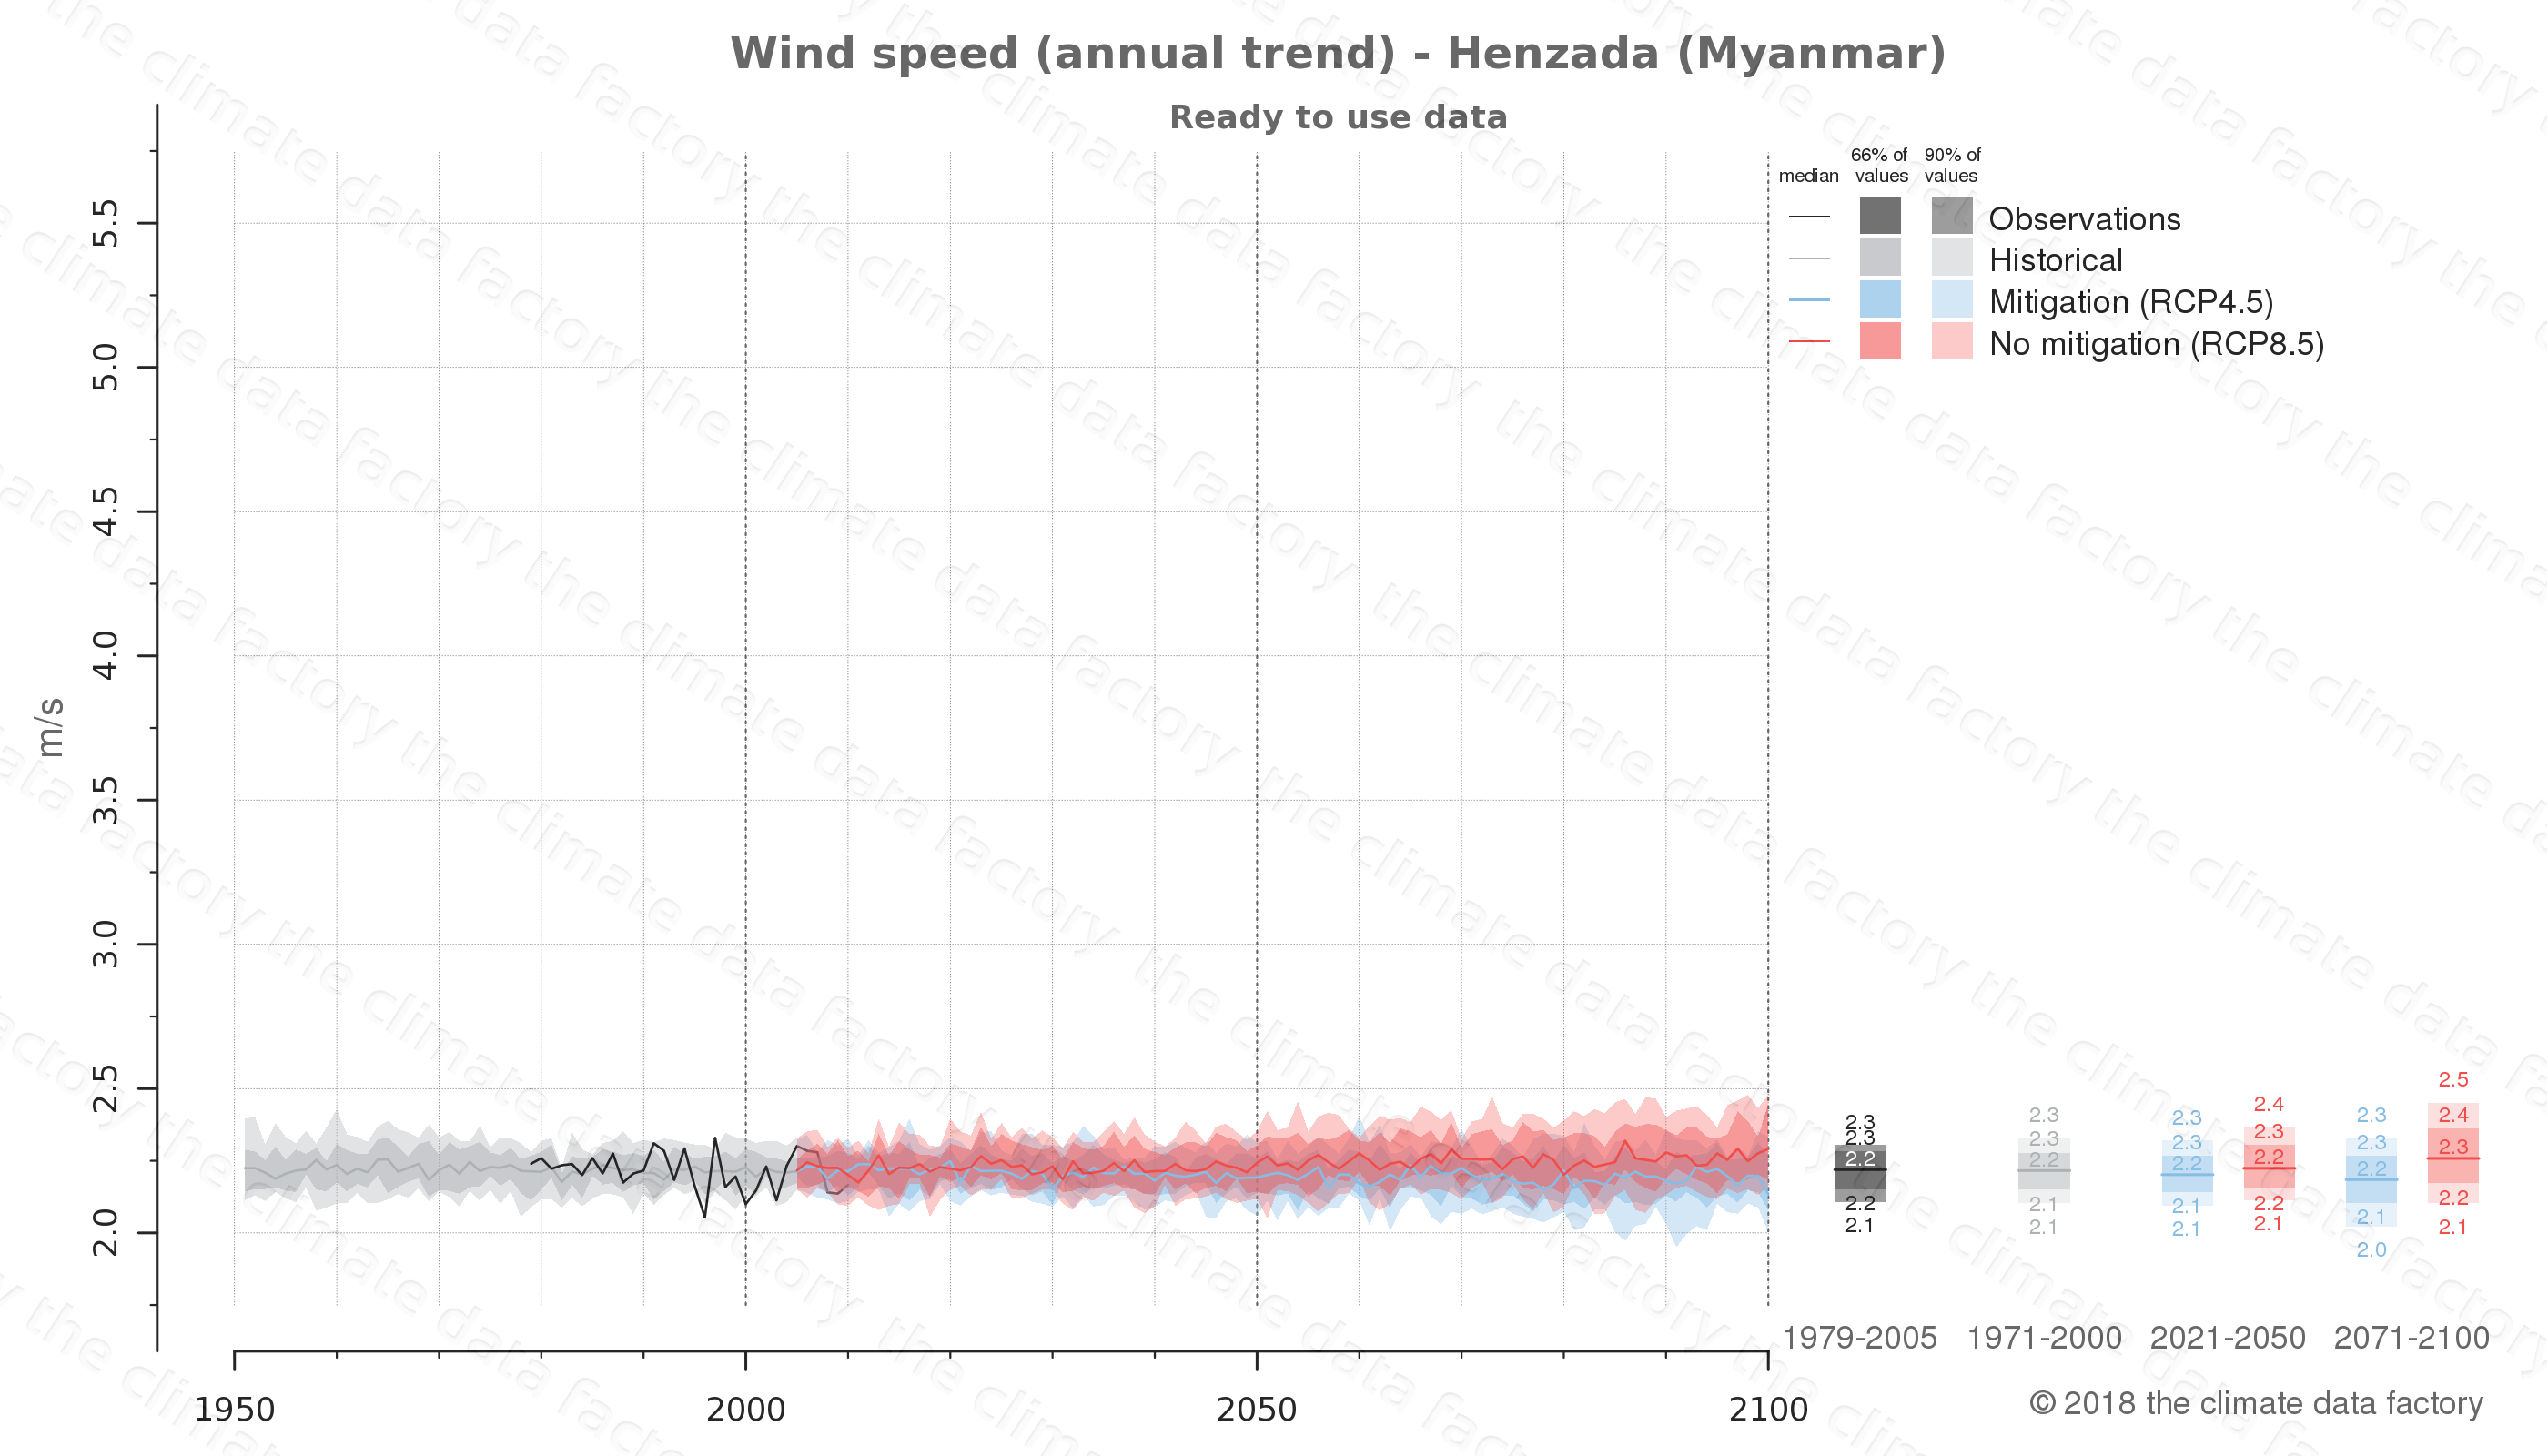 climate change data policy adaptation climate graph city data wind-speed henzada myanmar